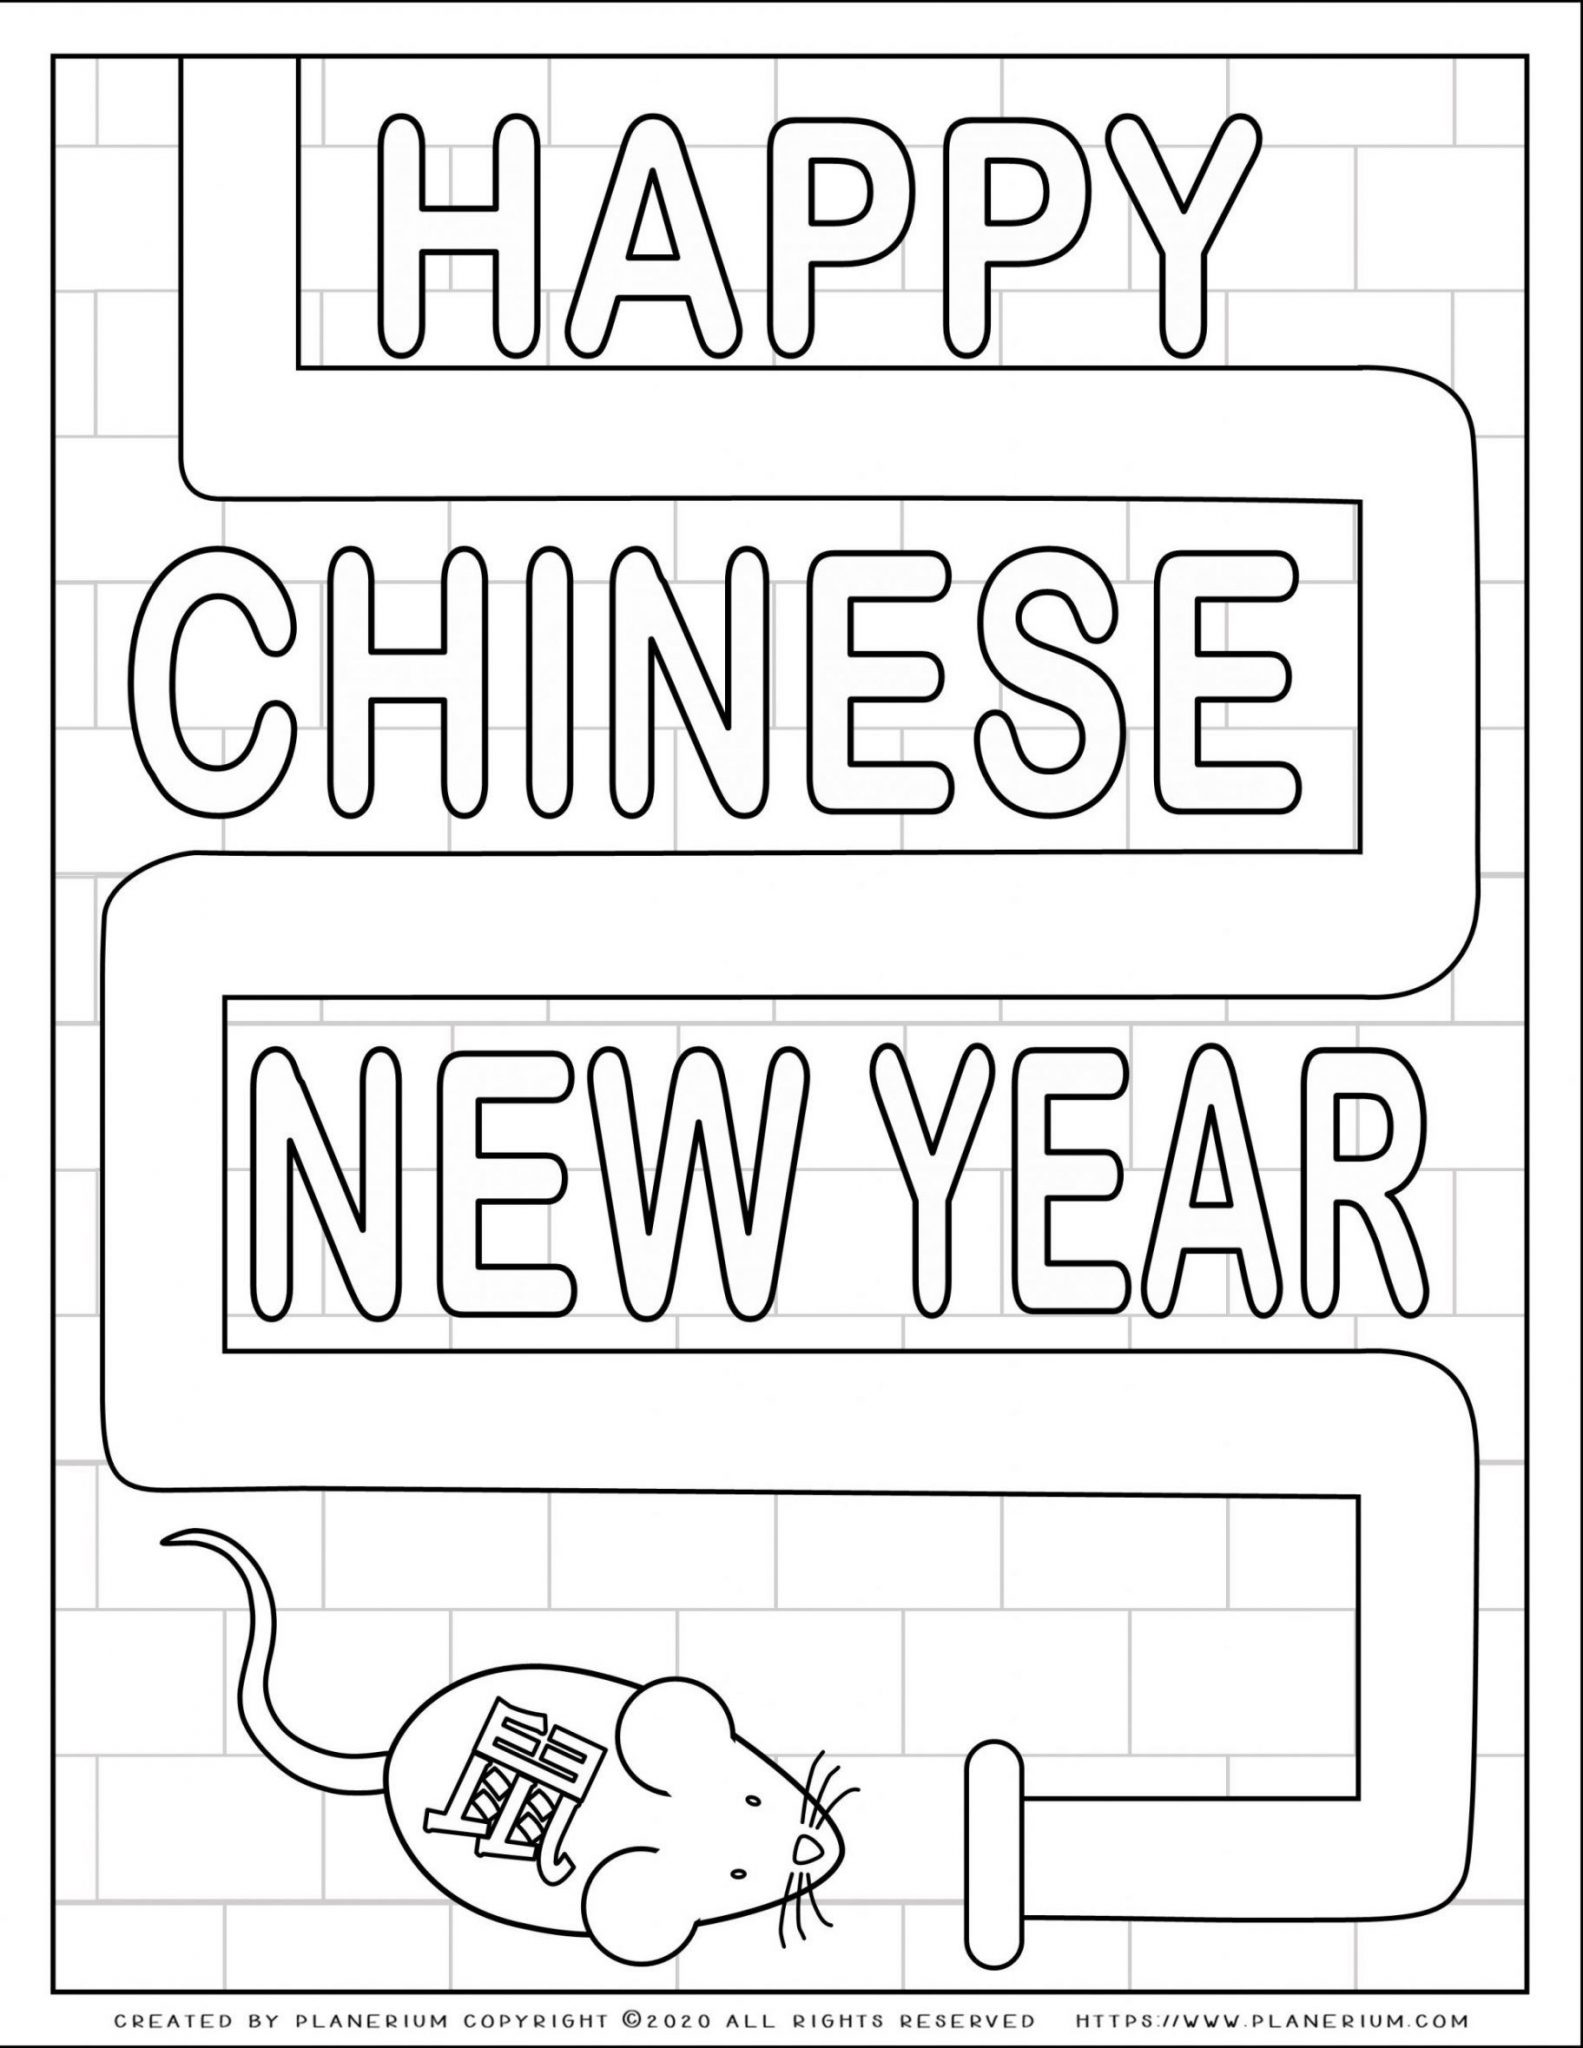 Lunar New Year Chinese Year of the Rat 2020 - Coloring Page - Maze   Planerium